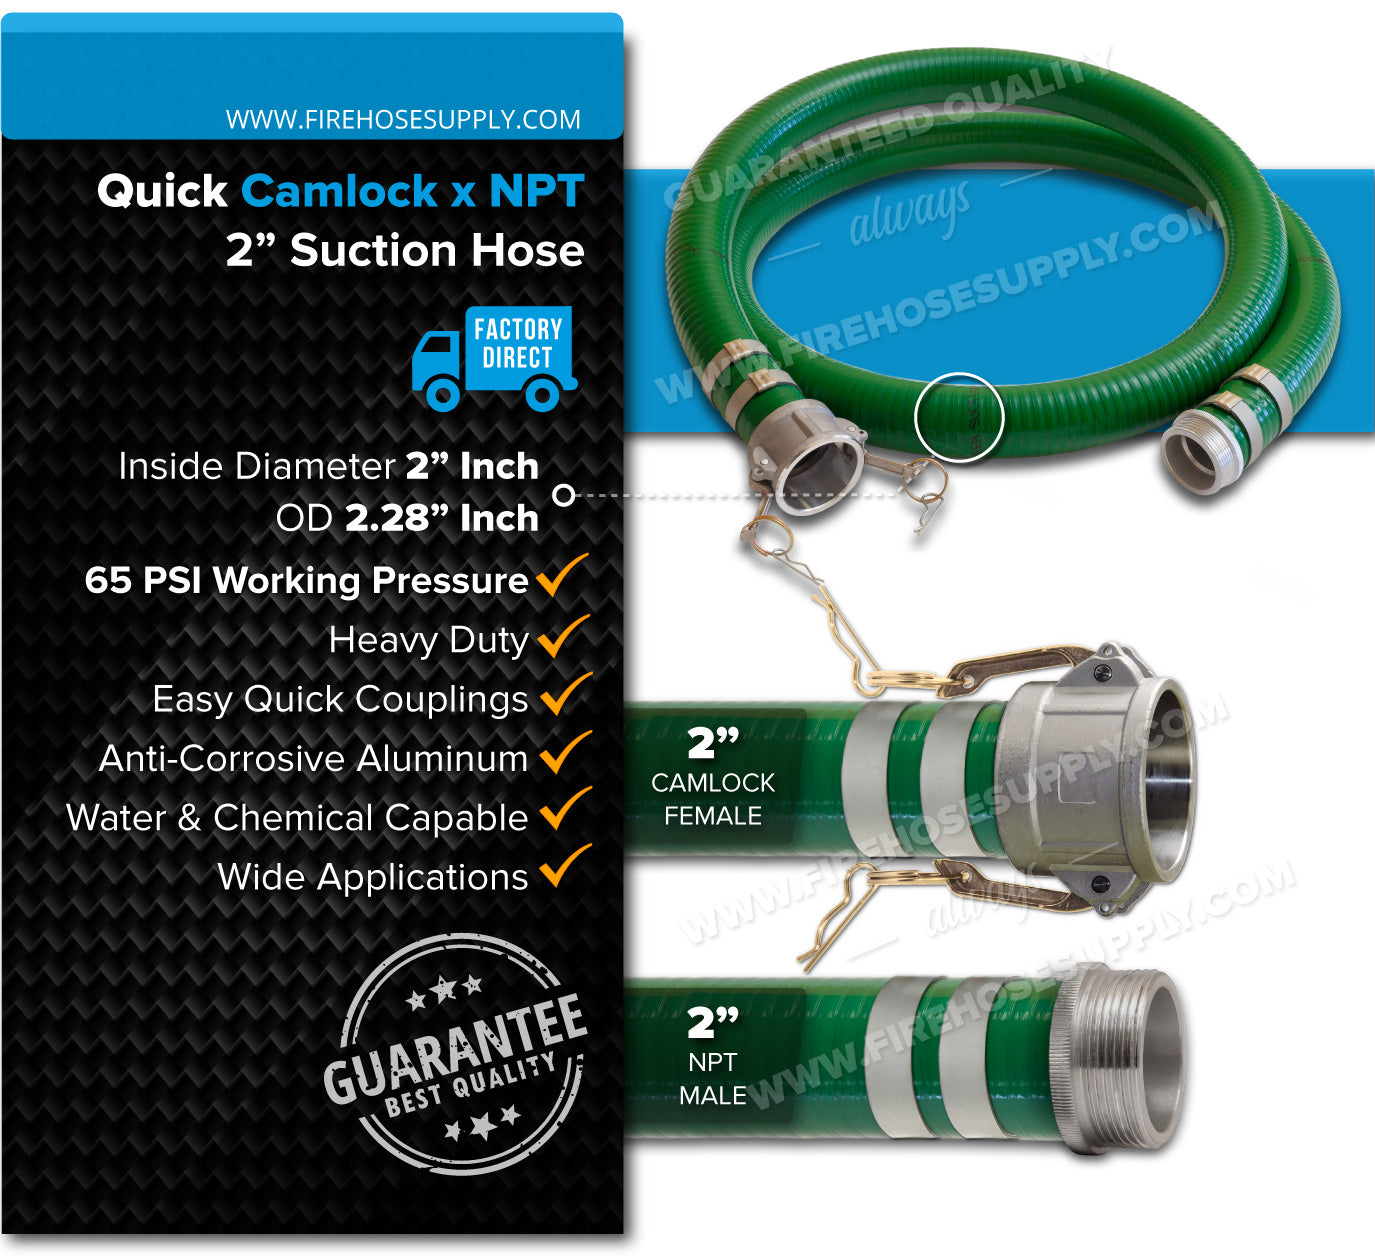 2 Inch Camlock Female x NPT Male Green Suction Hose Overview